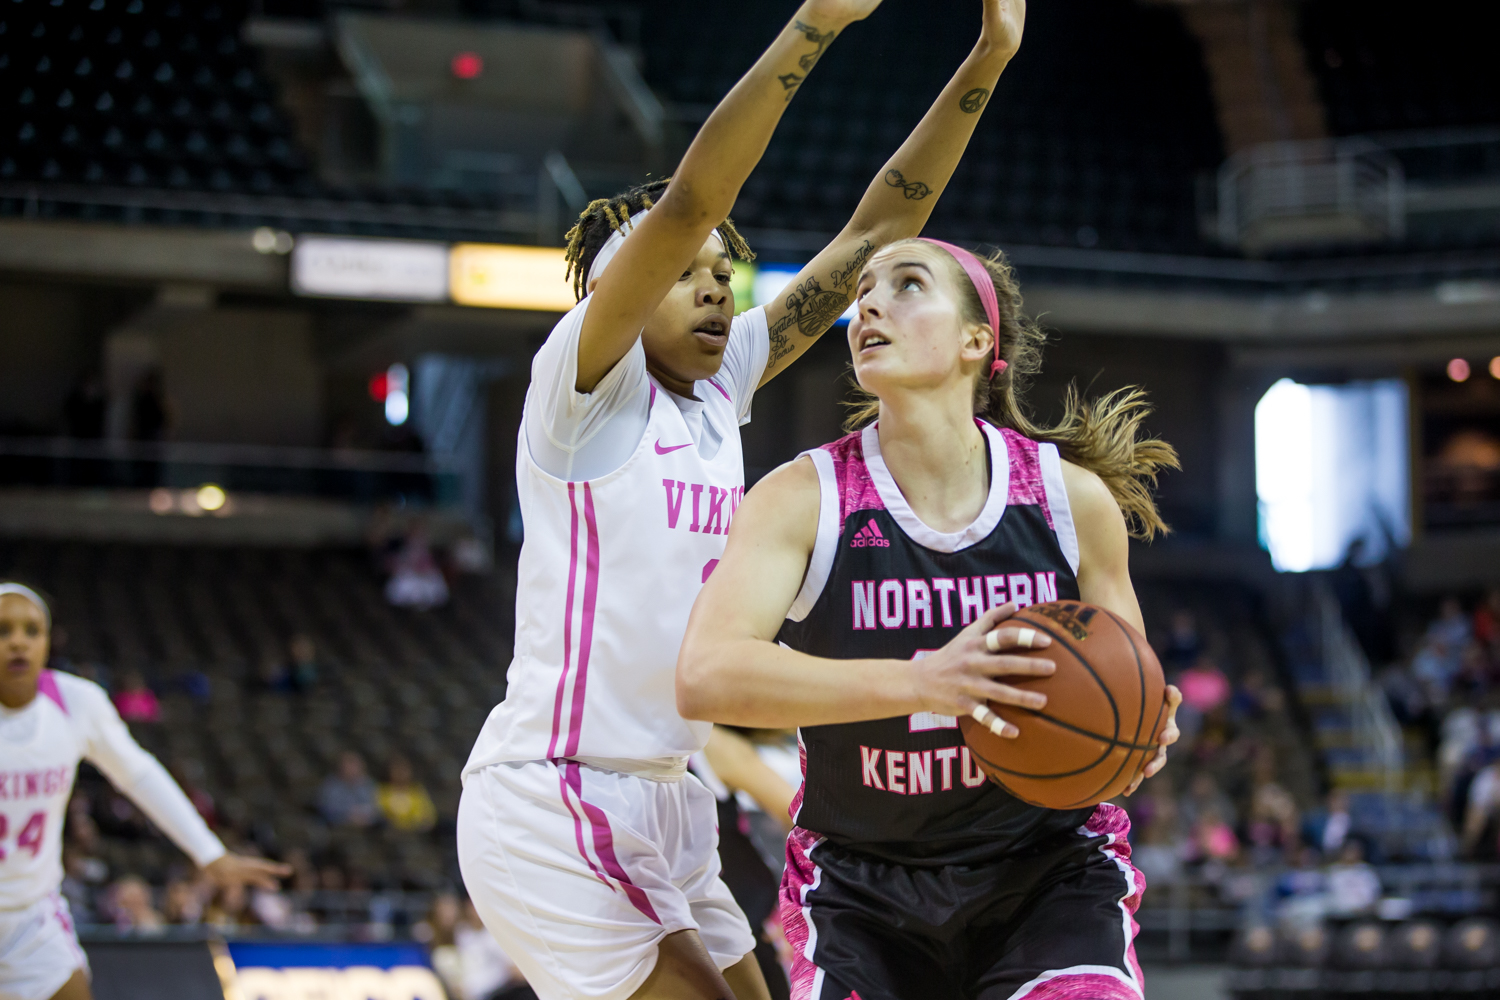 Kailey+Coffey+%2823%29+looks+to+shoot+during+the+game+against+Cleveland+State.+Coffey+shot+3-of-6+from+the+field+and+had+10+rebounds.